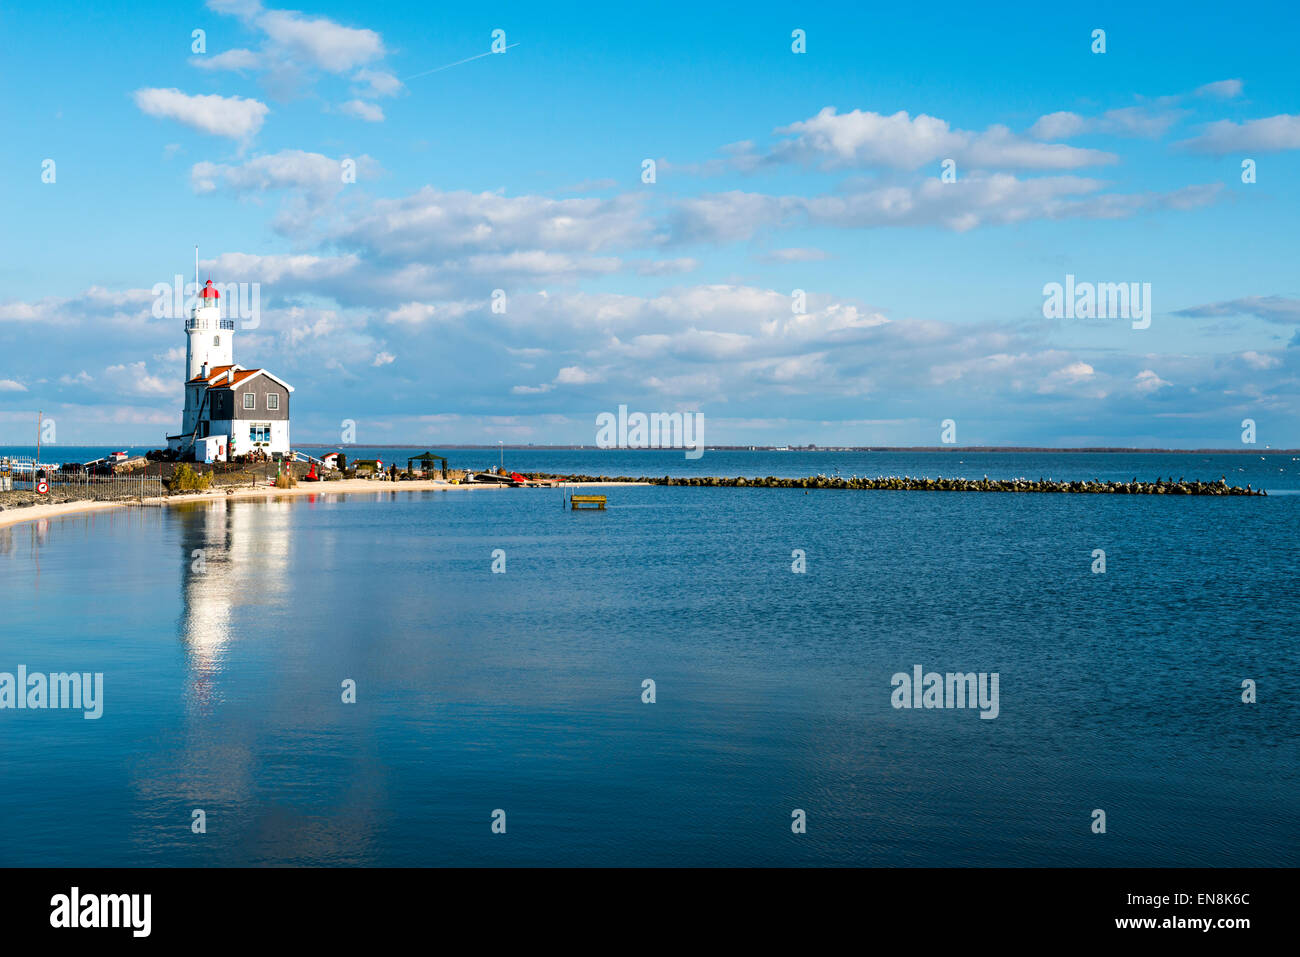 Marken lighthouse on the Markermeer, in the Netherlands - Stock Image